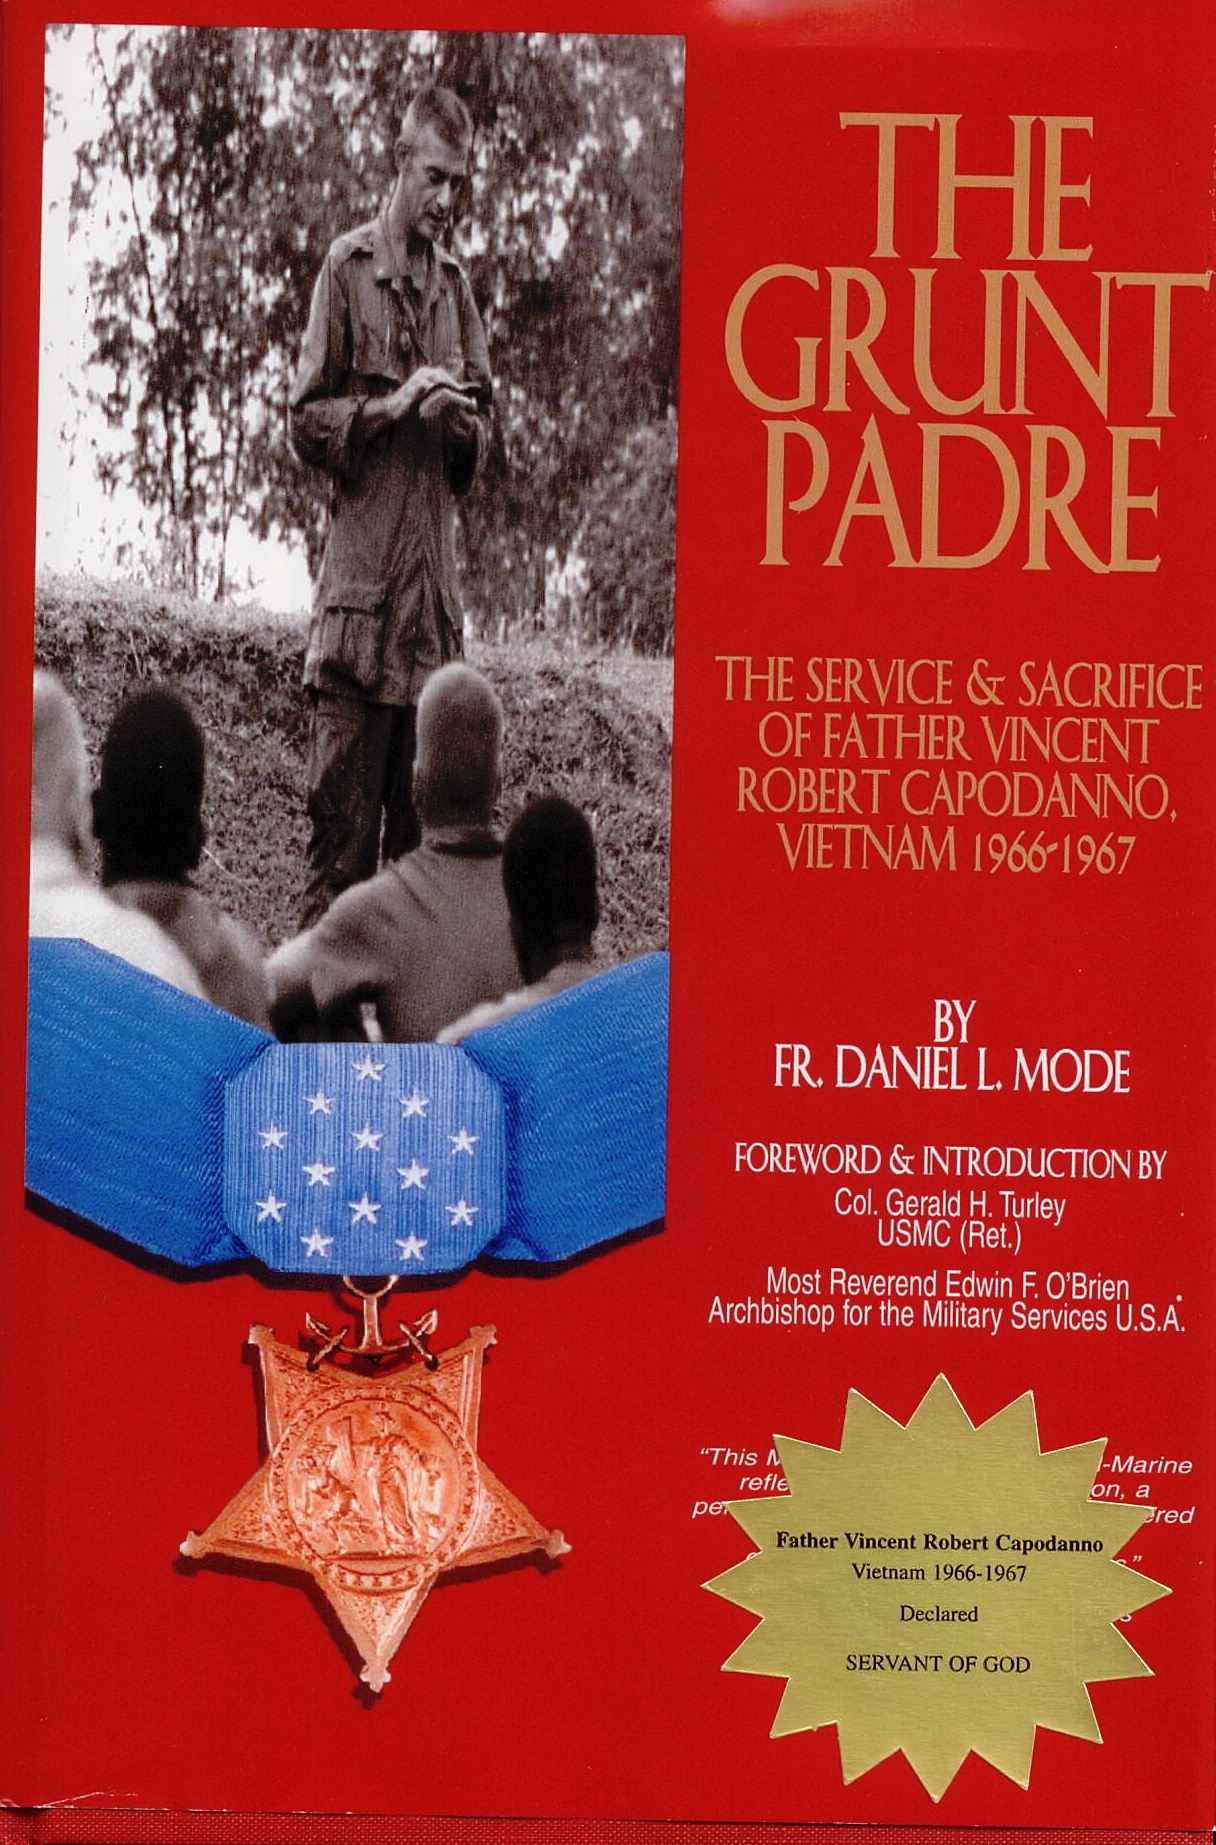 The Grunt Padre by Fr. Daniel L. Mode